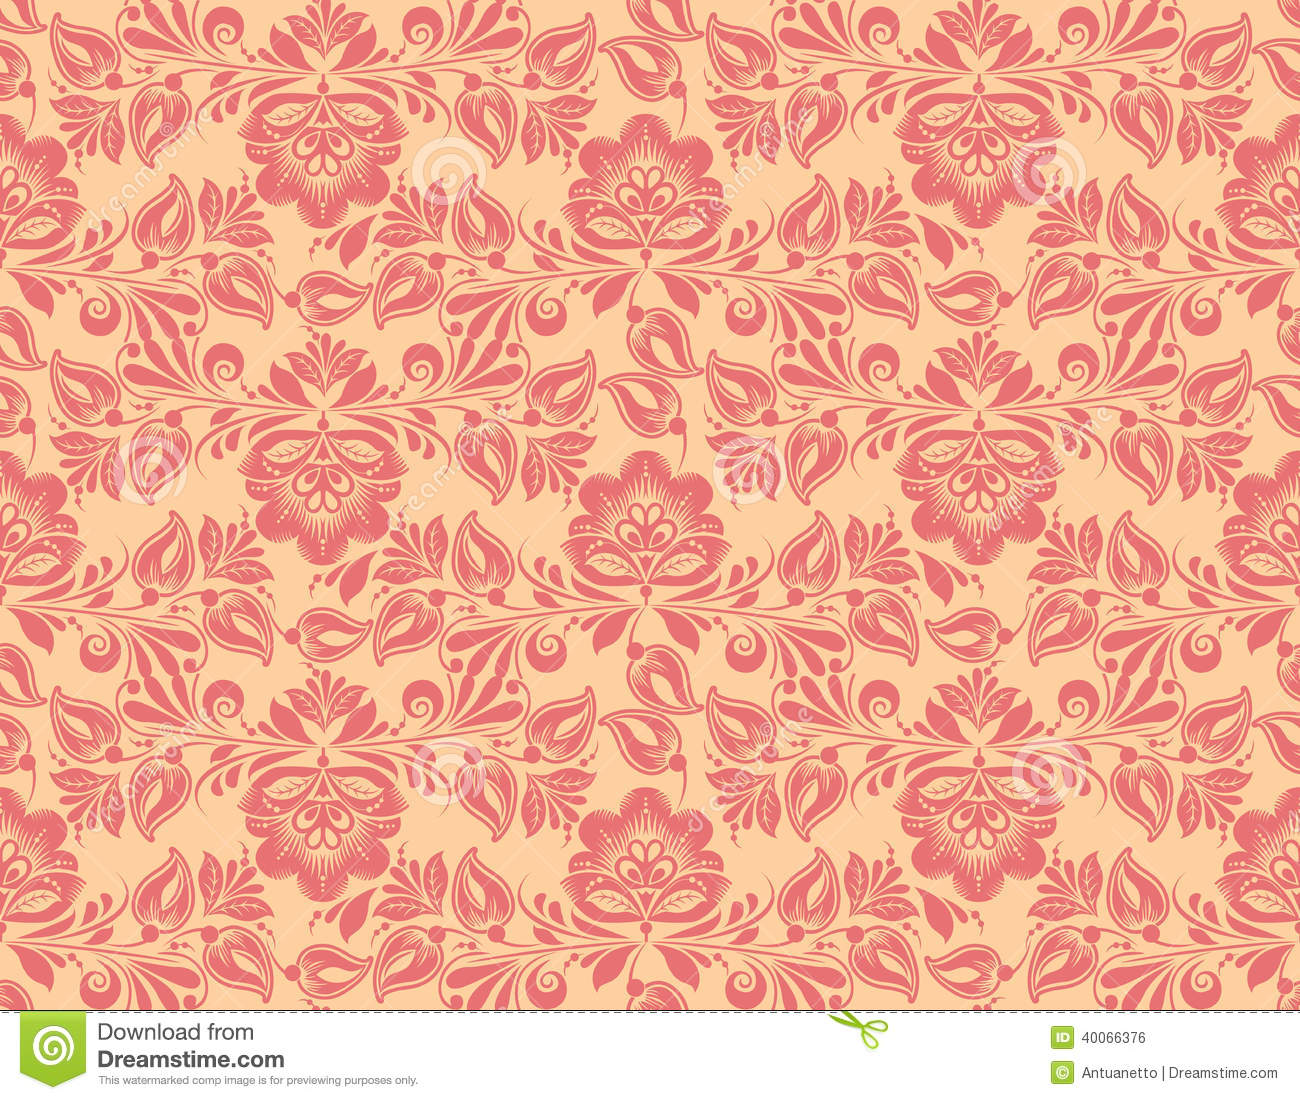 classic wallpaper seamless vintage flower pattern stock vector image 40066376. Black Bedroom Furniture Sets. Home Design Ideas